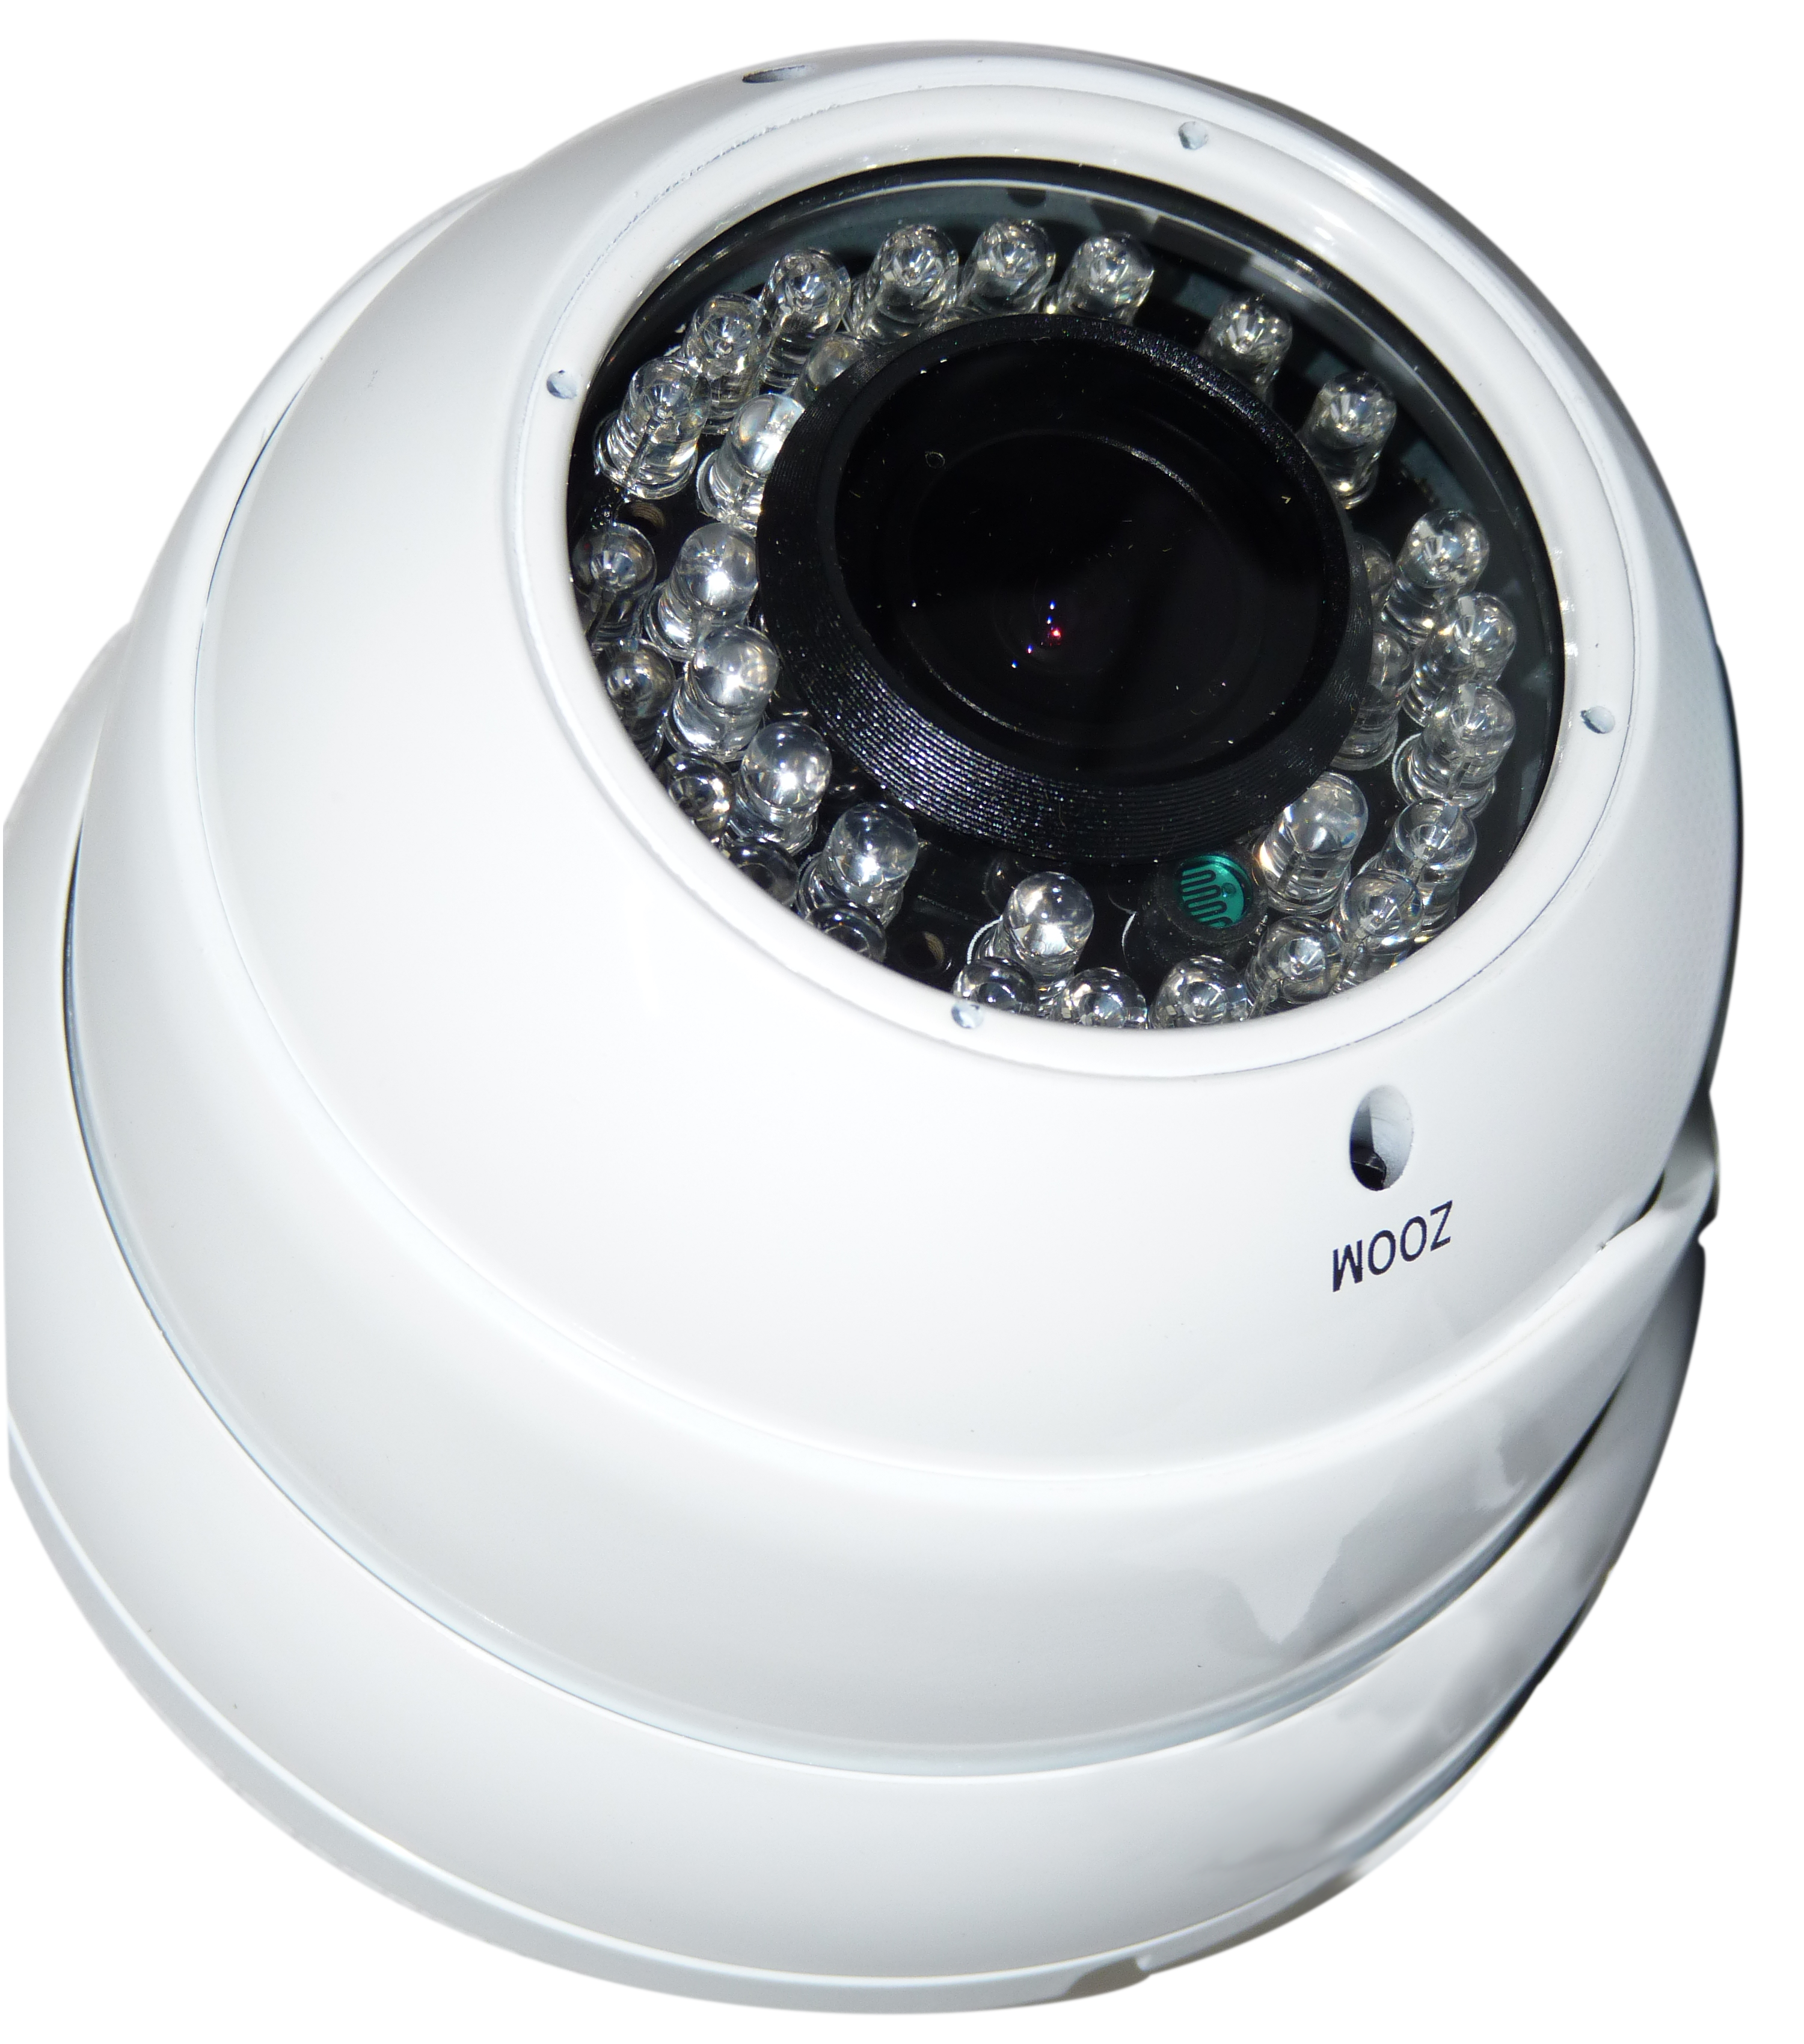 Image for DBS 760W - 700TVL CCTV Dome Security Camera - 1/3'' Sony Super HAD CCD II